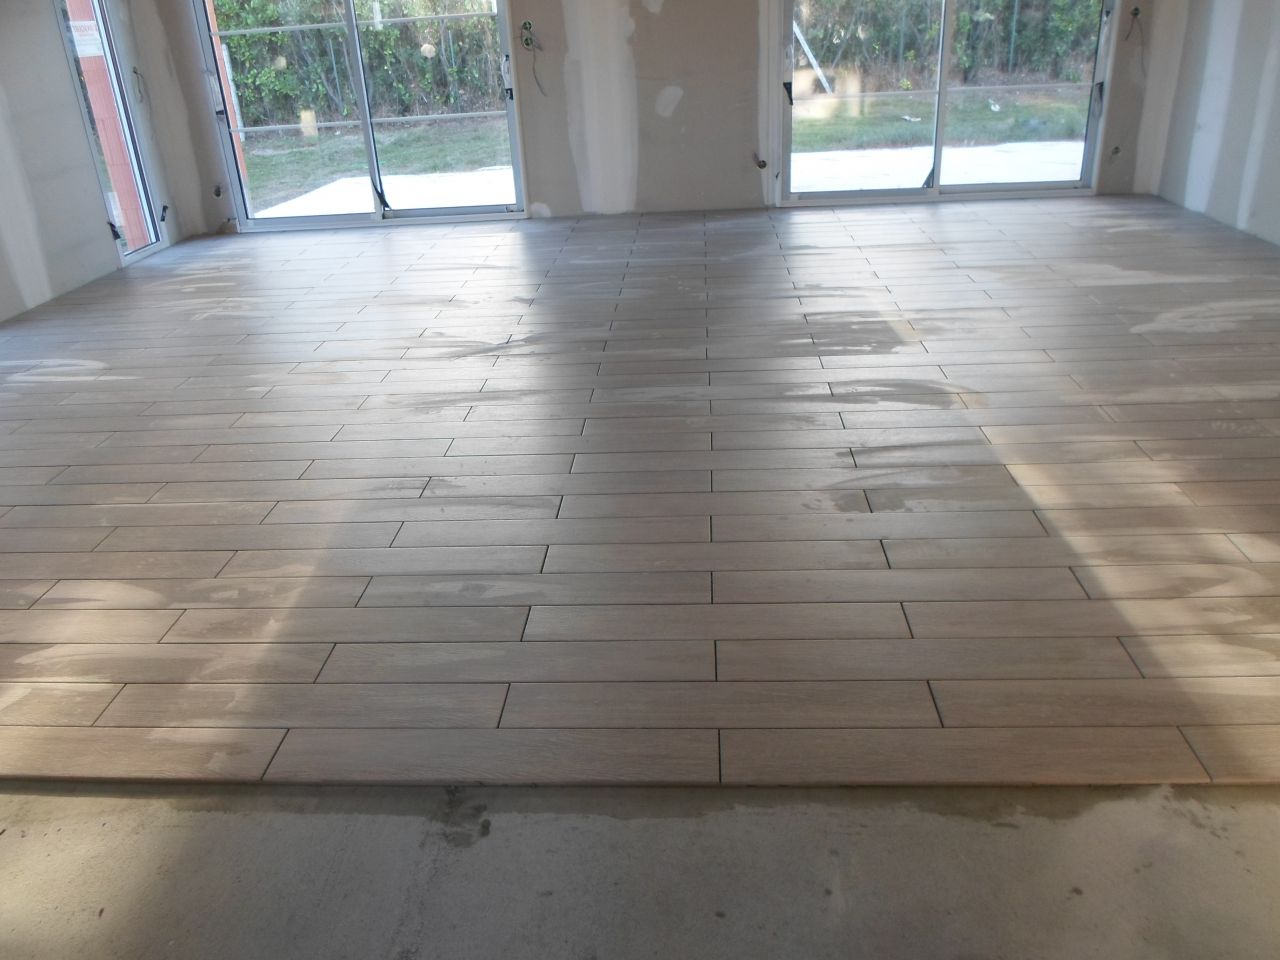 Parquet pas cher tvb r novation parquet paris tel for Carrelage imitation parquet pas cher